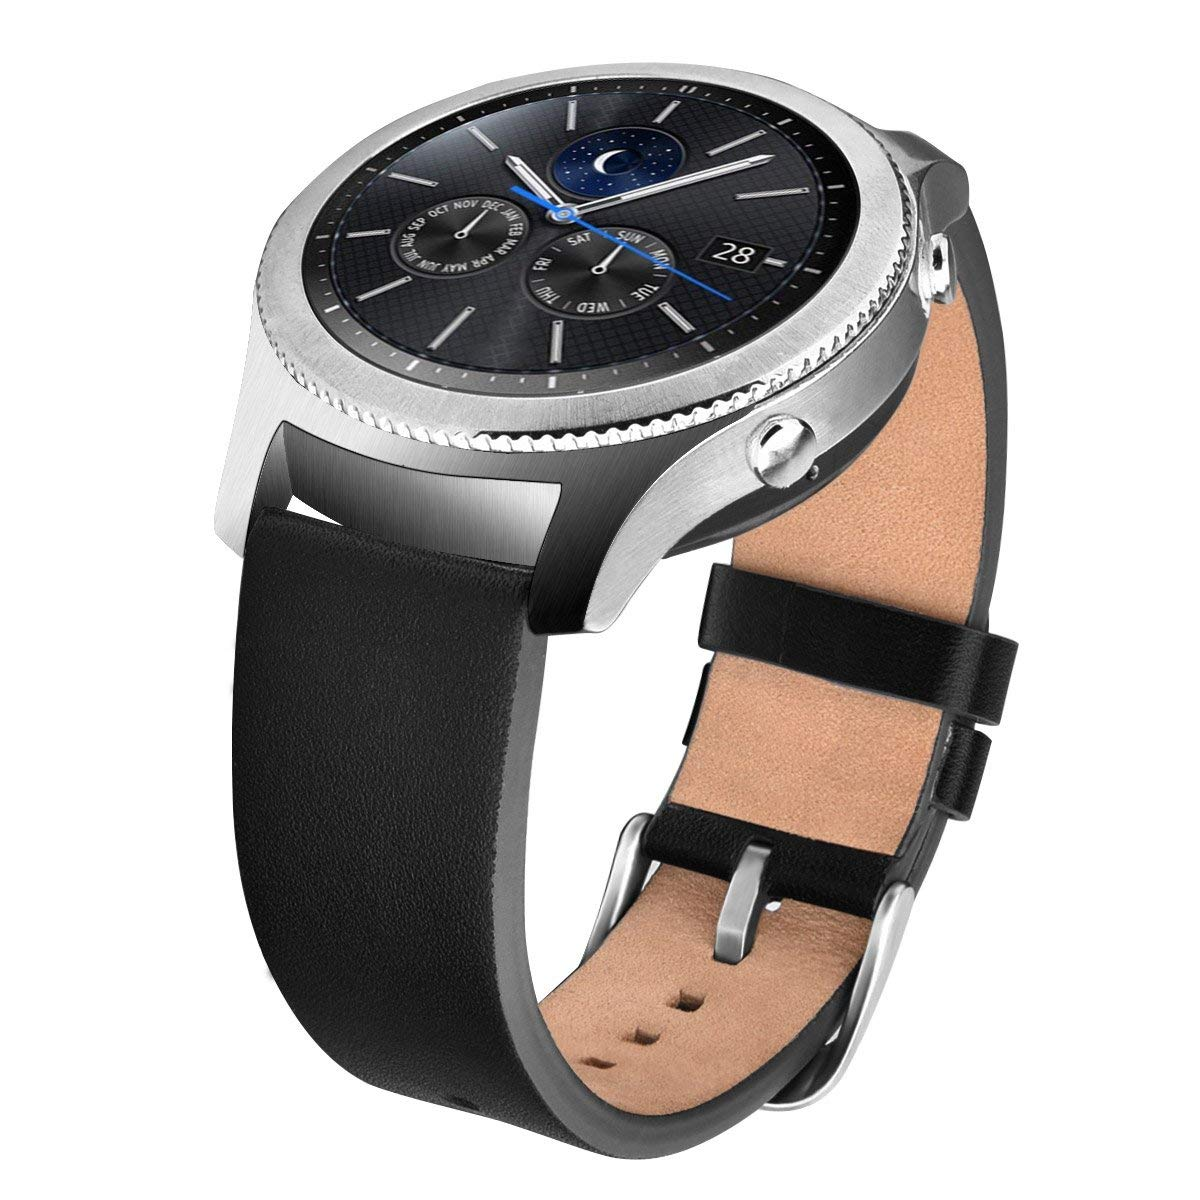 V_moro Compatible Gear S3 Classic/Frontier Bands/Galaxy Watch 46mm Band, 22mm Genuine Leather Replacement Strap for Samsung Galaxy Watch 46mm R800 & Gear S3 Classic / S3 Frontier Smartwatch Black